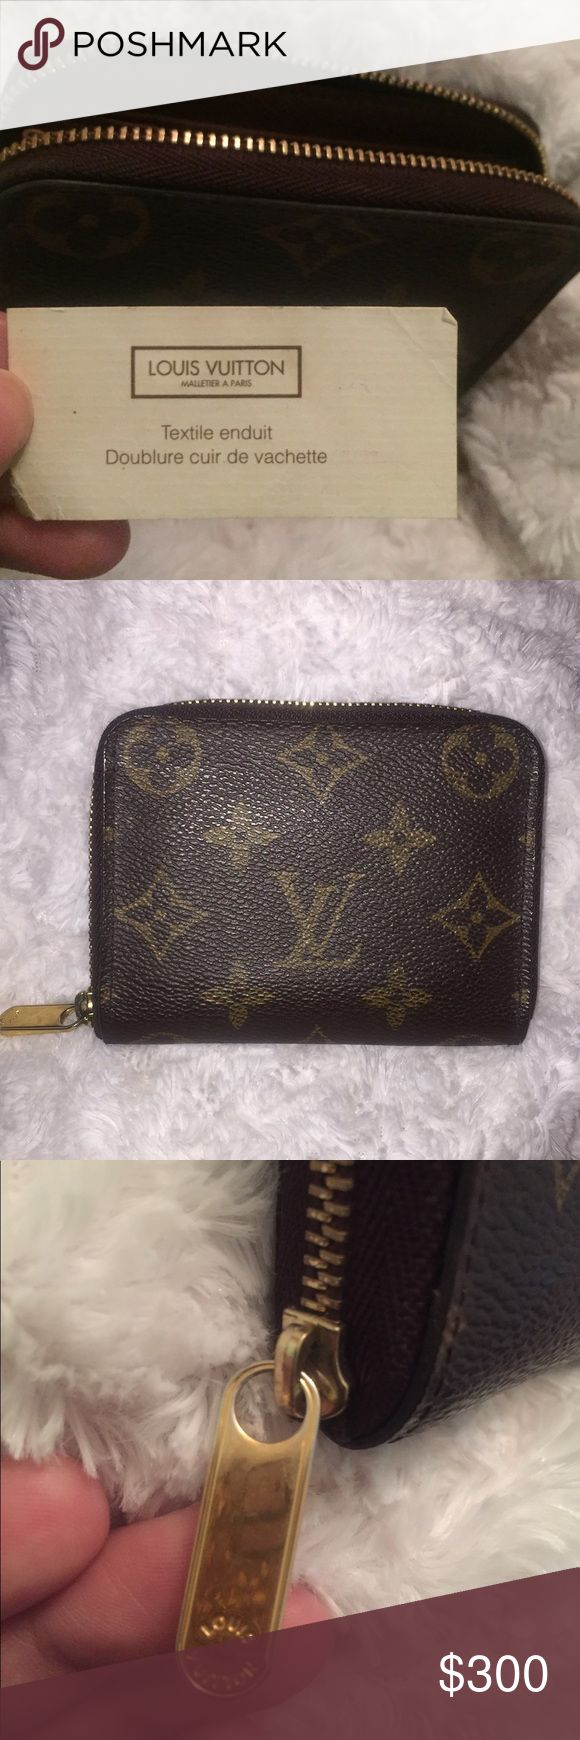 Zippy Louis Vuitton Coin Purse USED i'm fairly new to this app but i was gifted this coin purse from my ex fiancé... i used it as we were together and never thought i'd be selling so unfortunately i don't have the box it came in. It's in good condition since i valued it at the time but i no longer want to keep it so i thought why not sell. It's authentic but feel free to offer a lower price, just want to move on. Louis Vuitton Bags Wallets